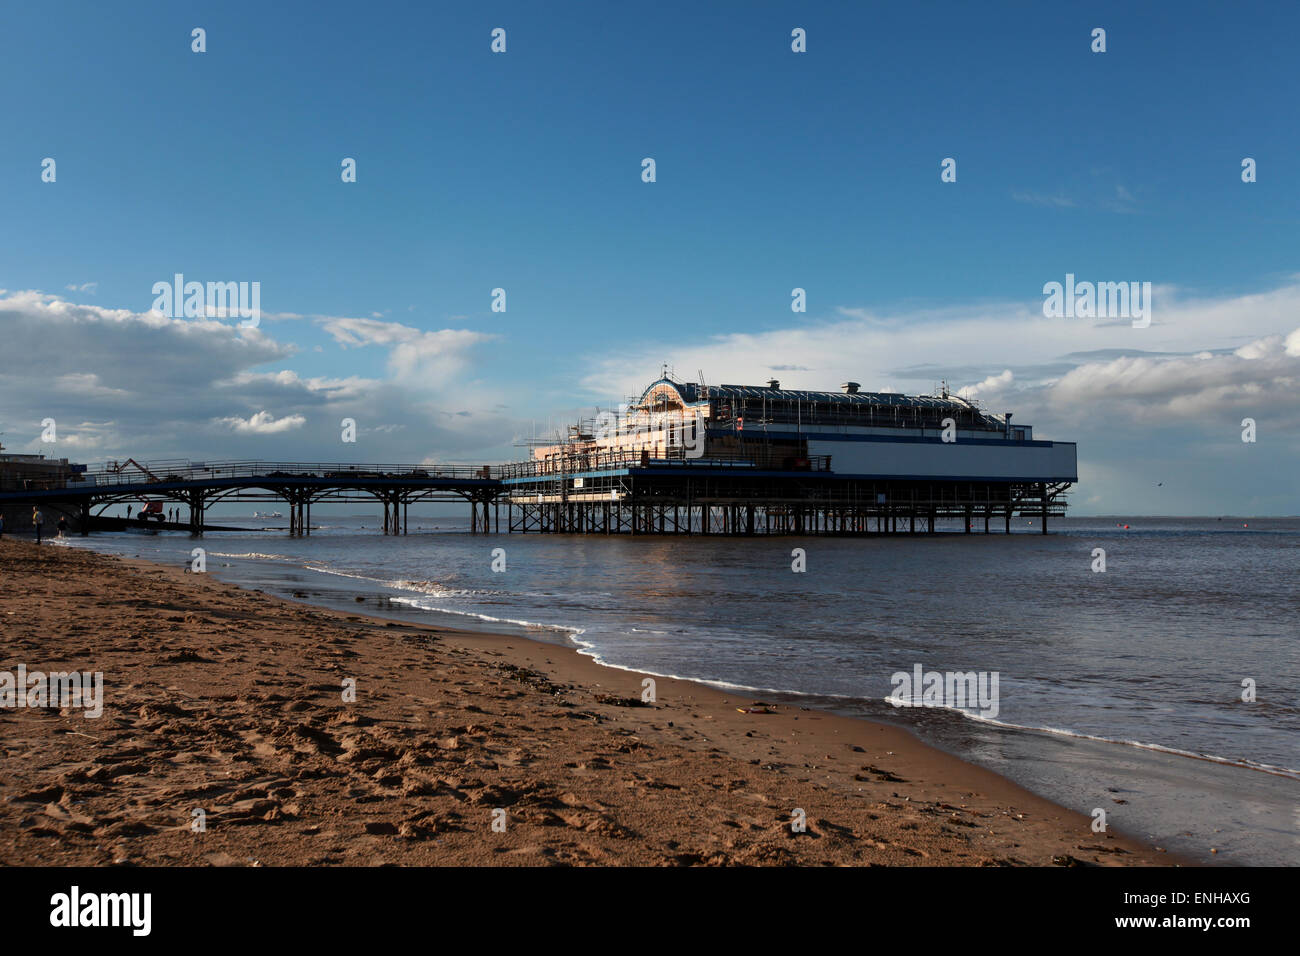 Cleethorpes Pier at Cleethorpes beach near Grimsby Stock Photo